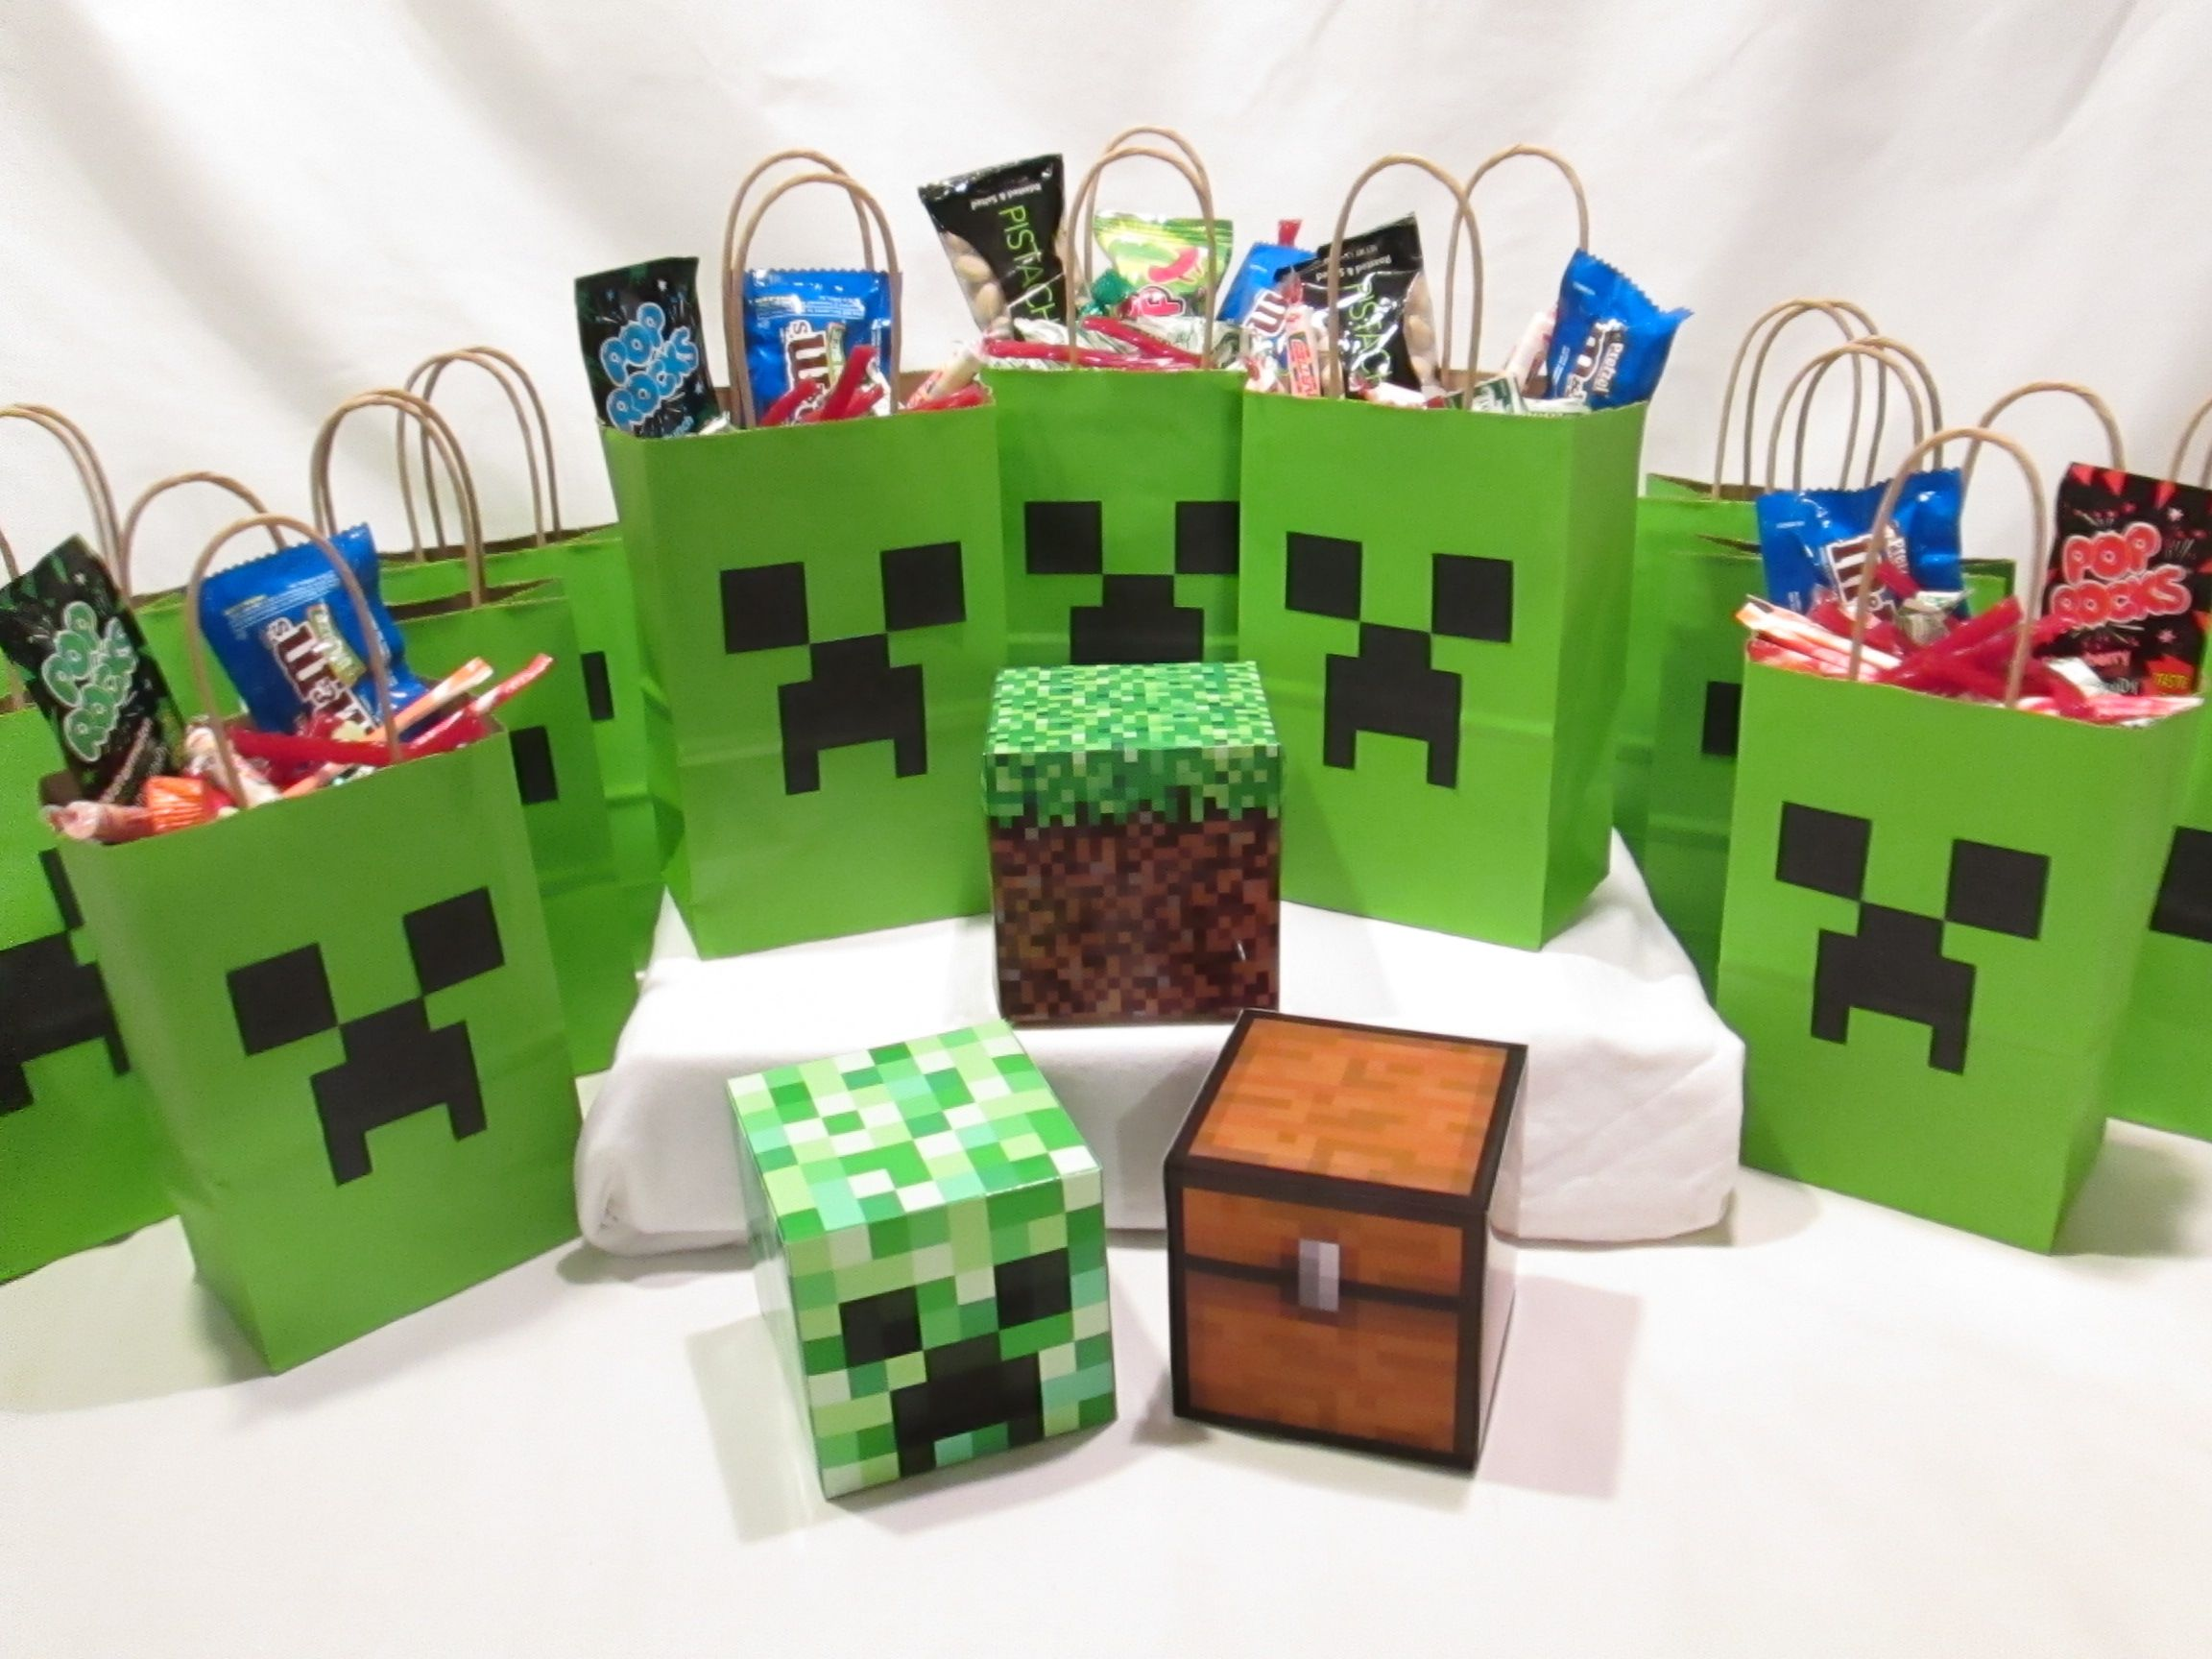 Treasure Chest Decorations Minecraft Party Decorations 12 Creeper Bags And 3 Solid Table